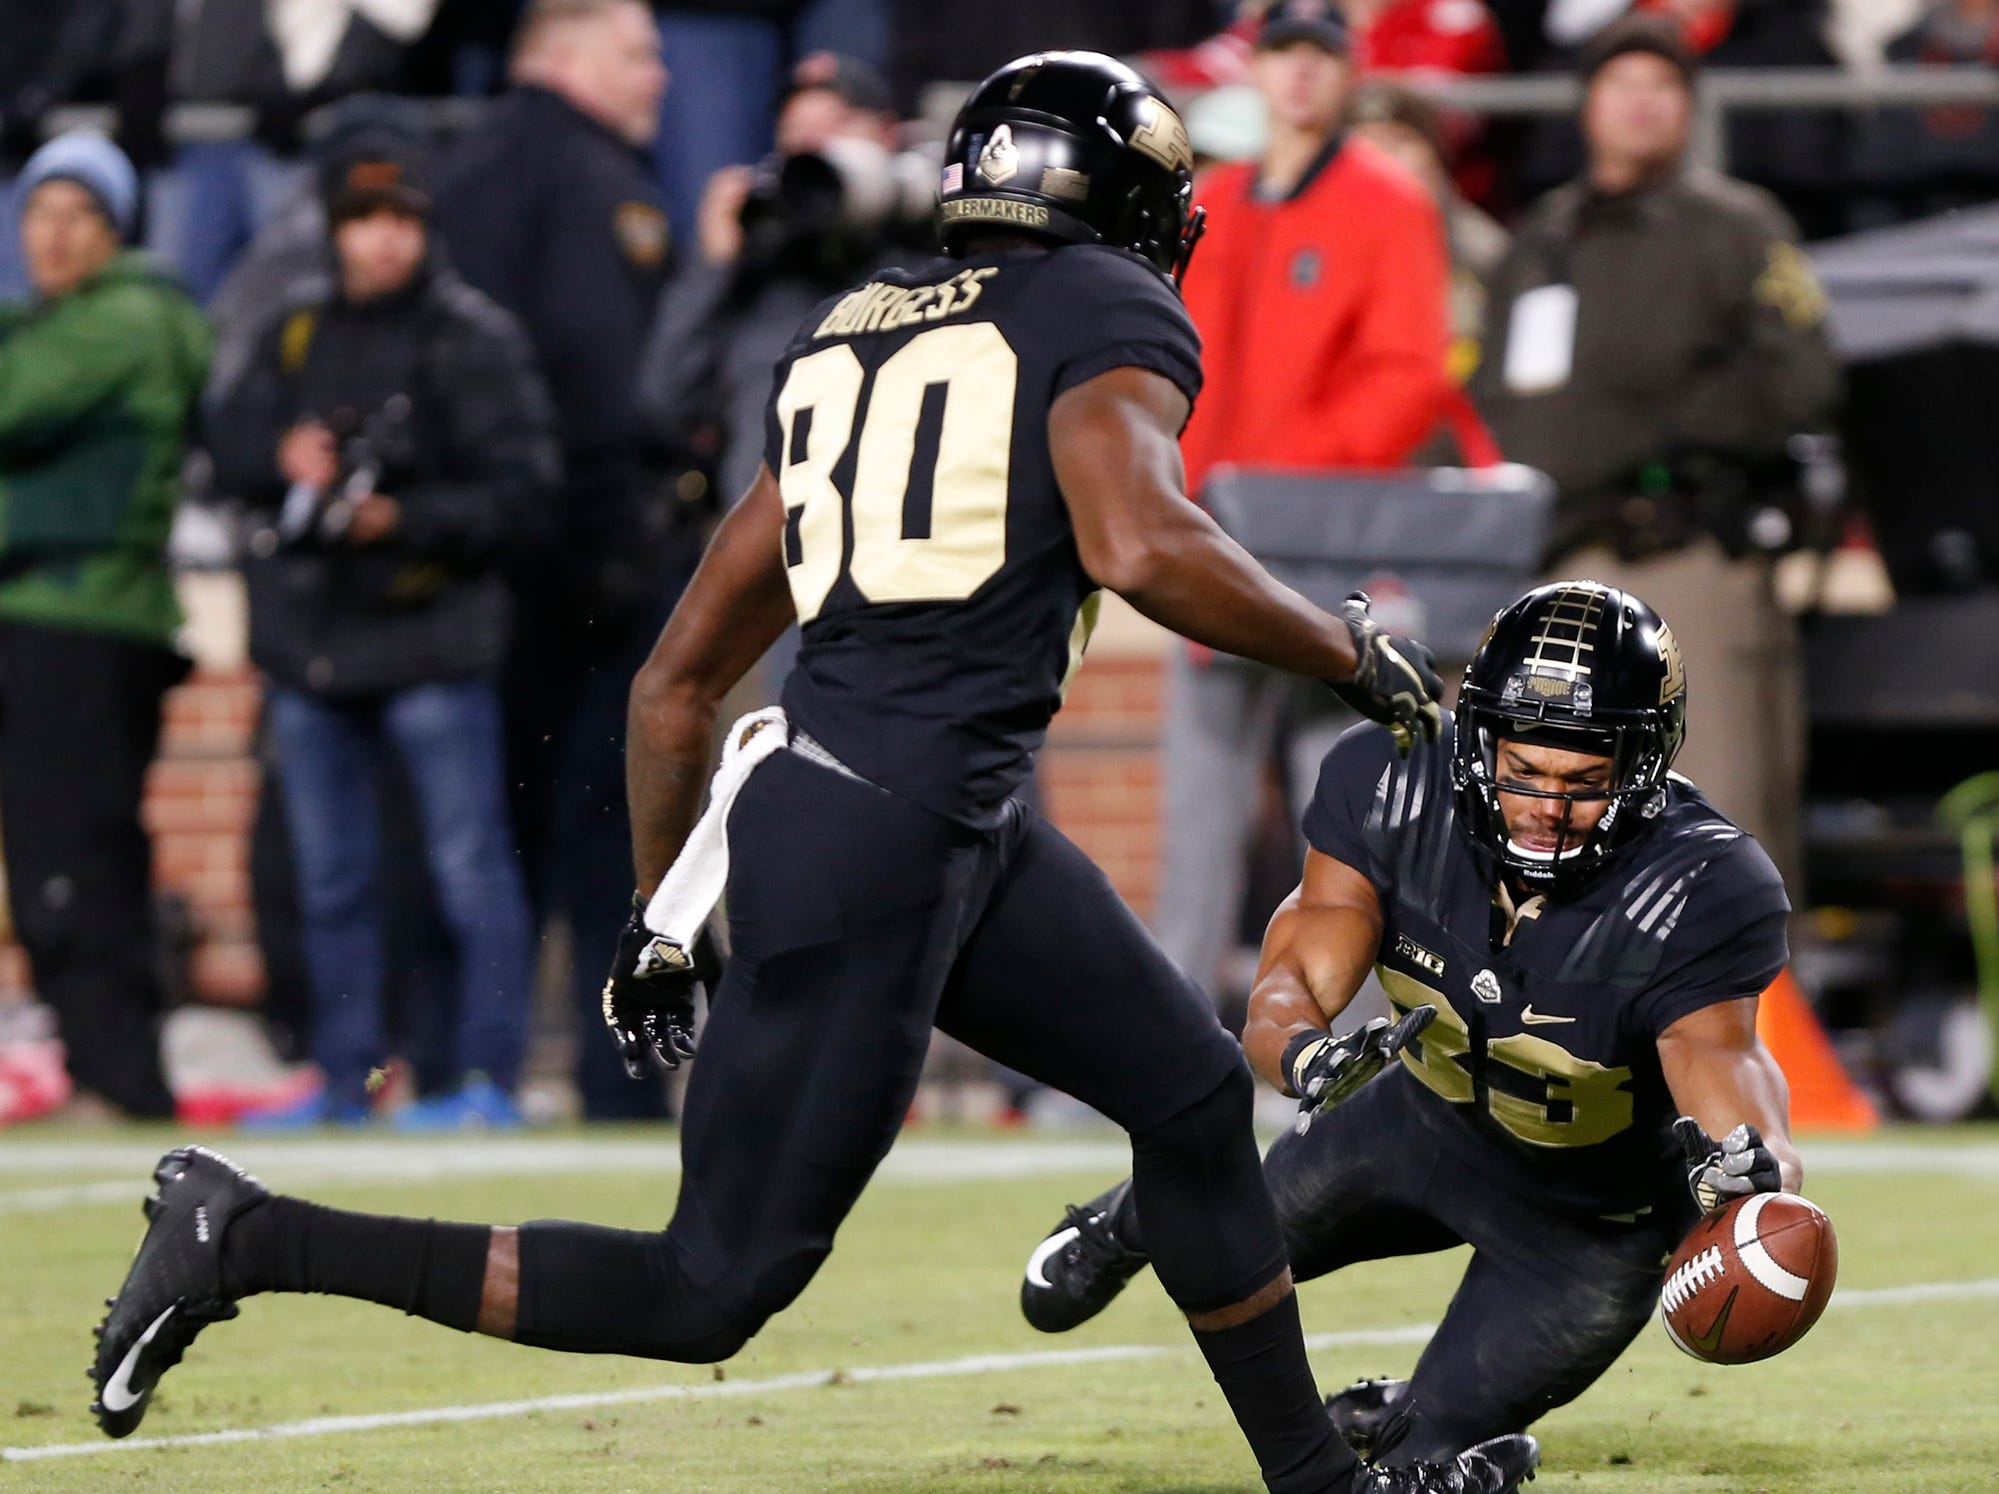 Malcolm Dotson of Purdue dives to keep the ball from crossing the goal line on punt against Ohio State Saturday, October 20, 2018, at Ross-Ade Stadium. Purdue upset No. 2 ranked Ohio State 49-20.